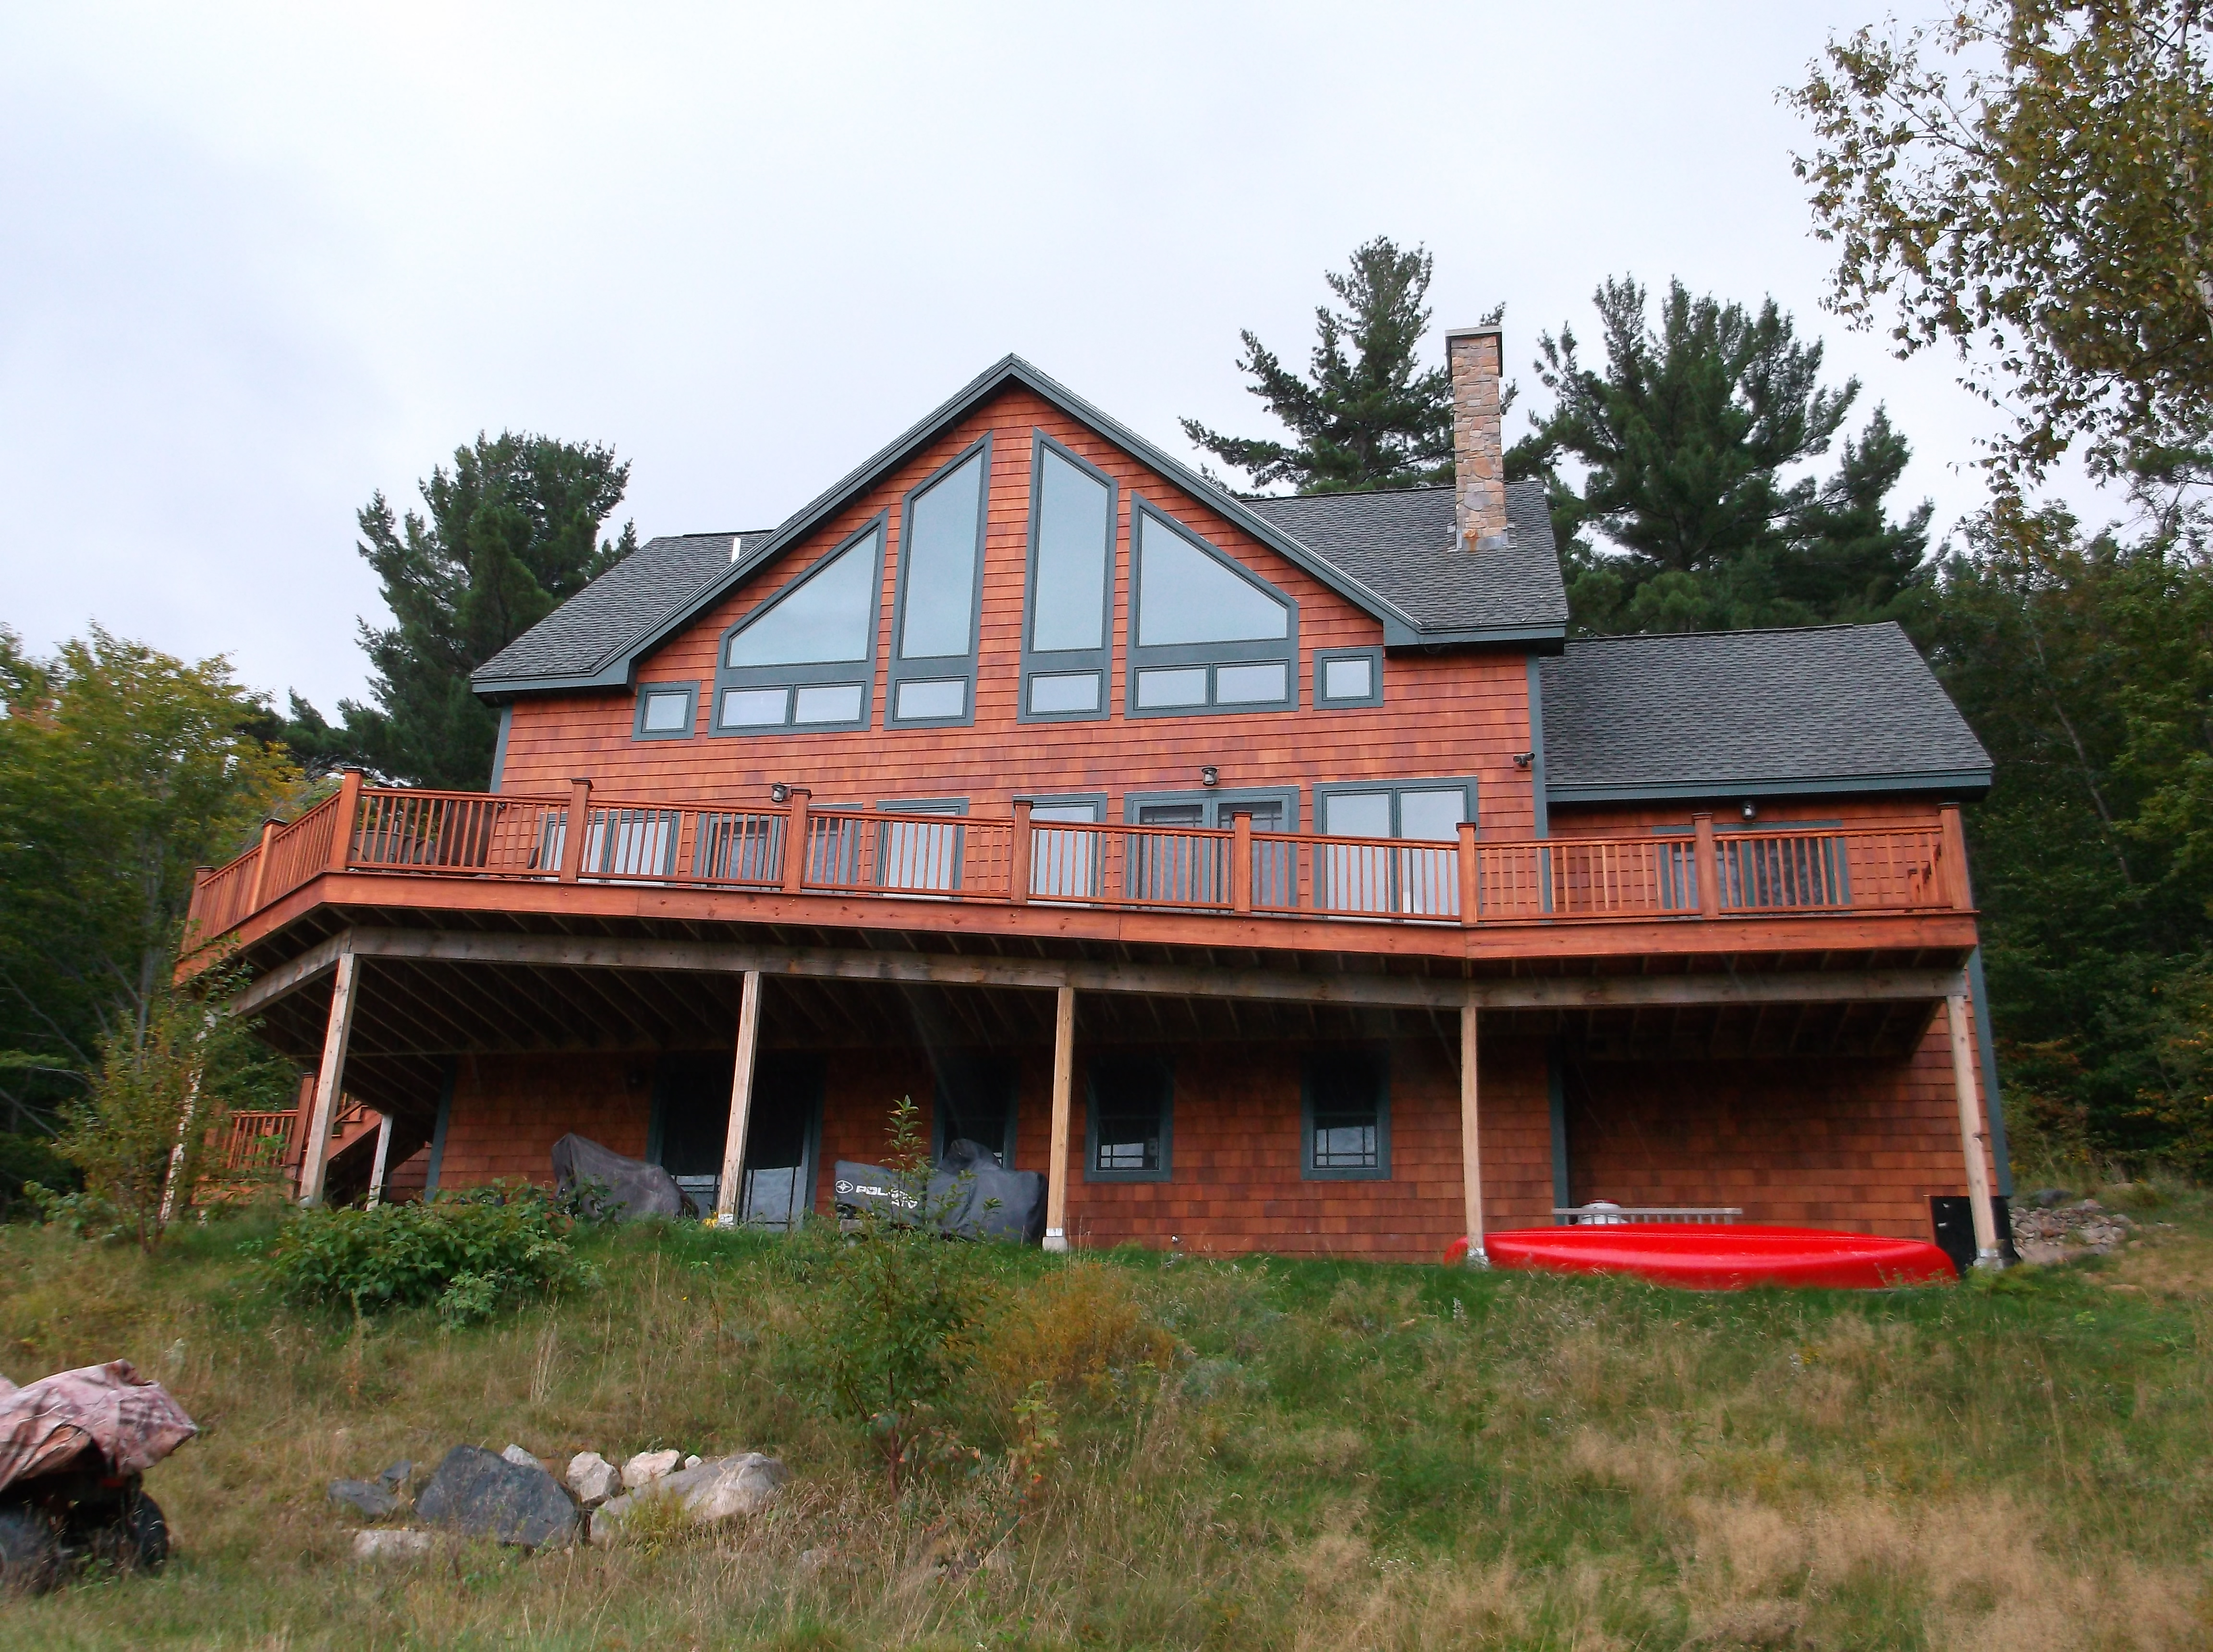 New hampshire and maine home builder 2 rcc building for Home builders in new hampshire